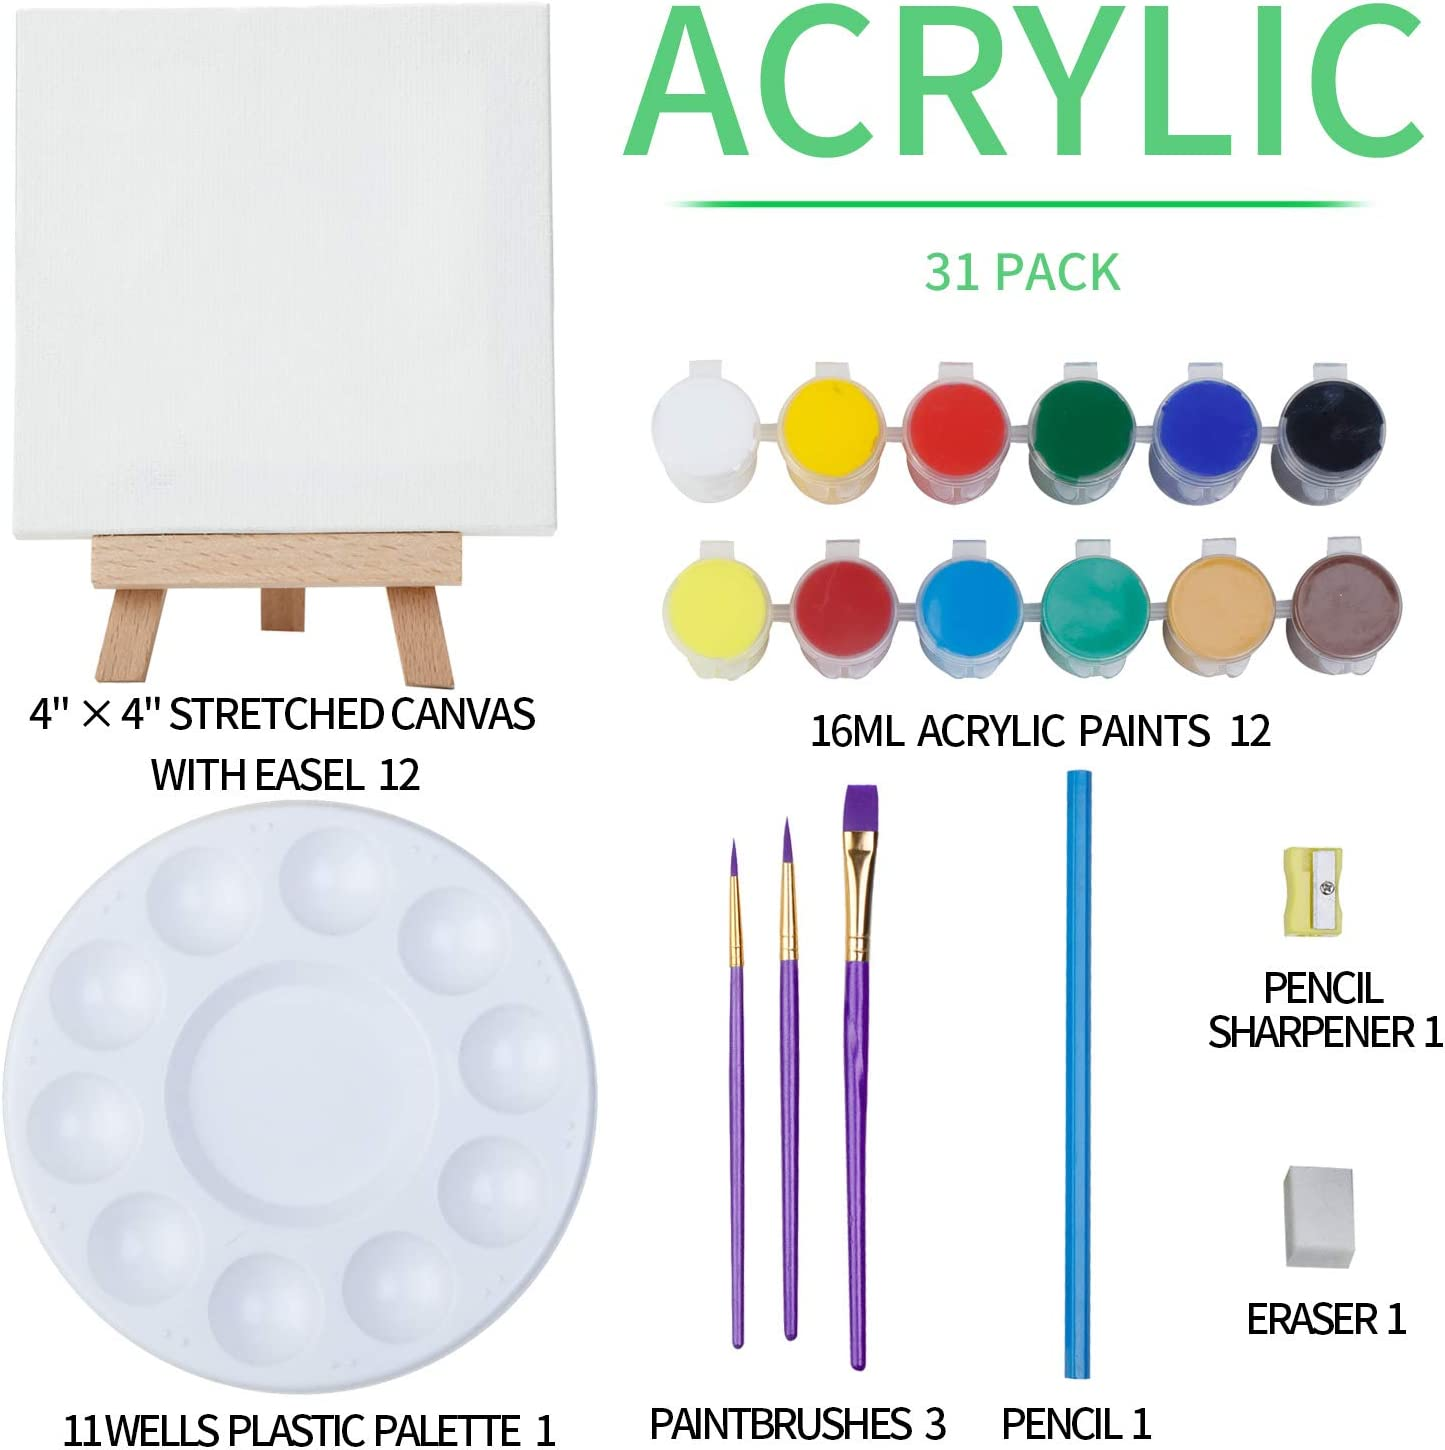 Elegant Gift Box for Kids and Beginners 12/×16ML Acrylic Paint Set MEEDEN 43-Piece Acrylic Painting Set 3Paintbrushes and All The Additional Supplies 12Mini Beech Wood Easels and 12Stretched Canvas